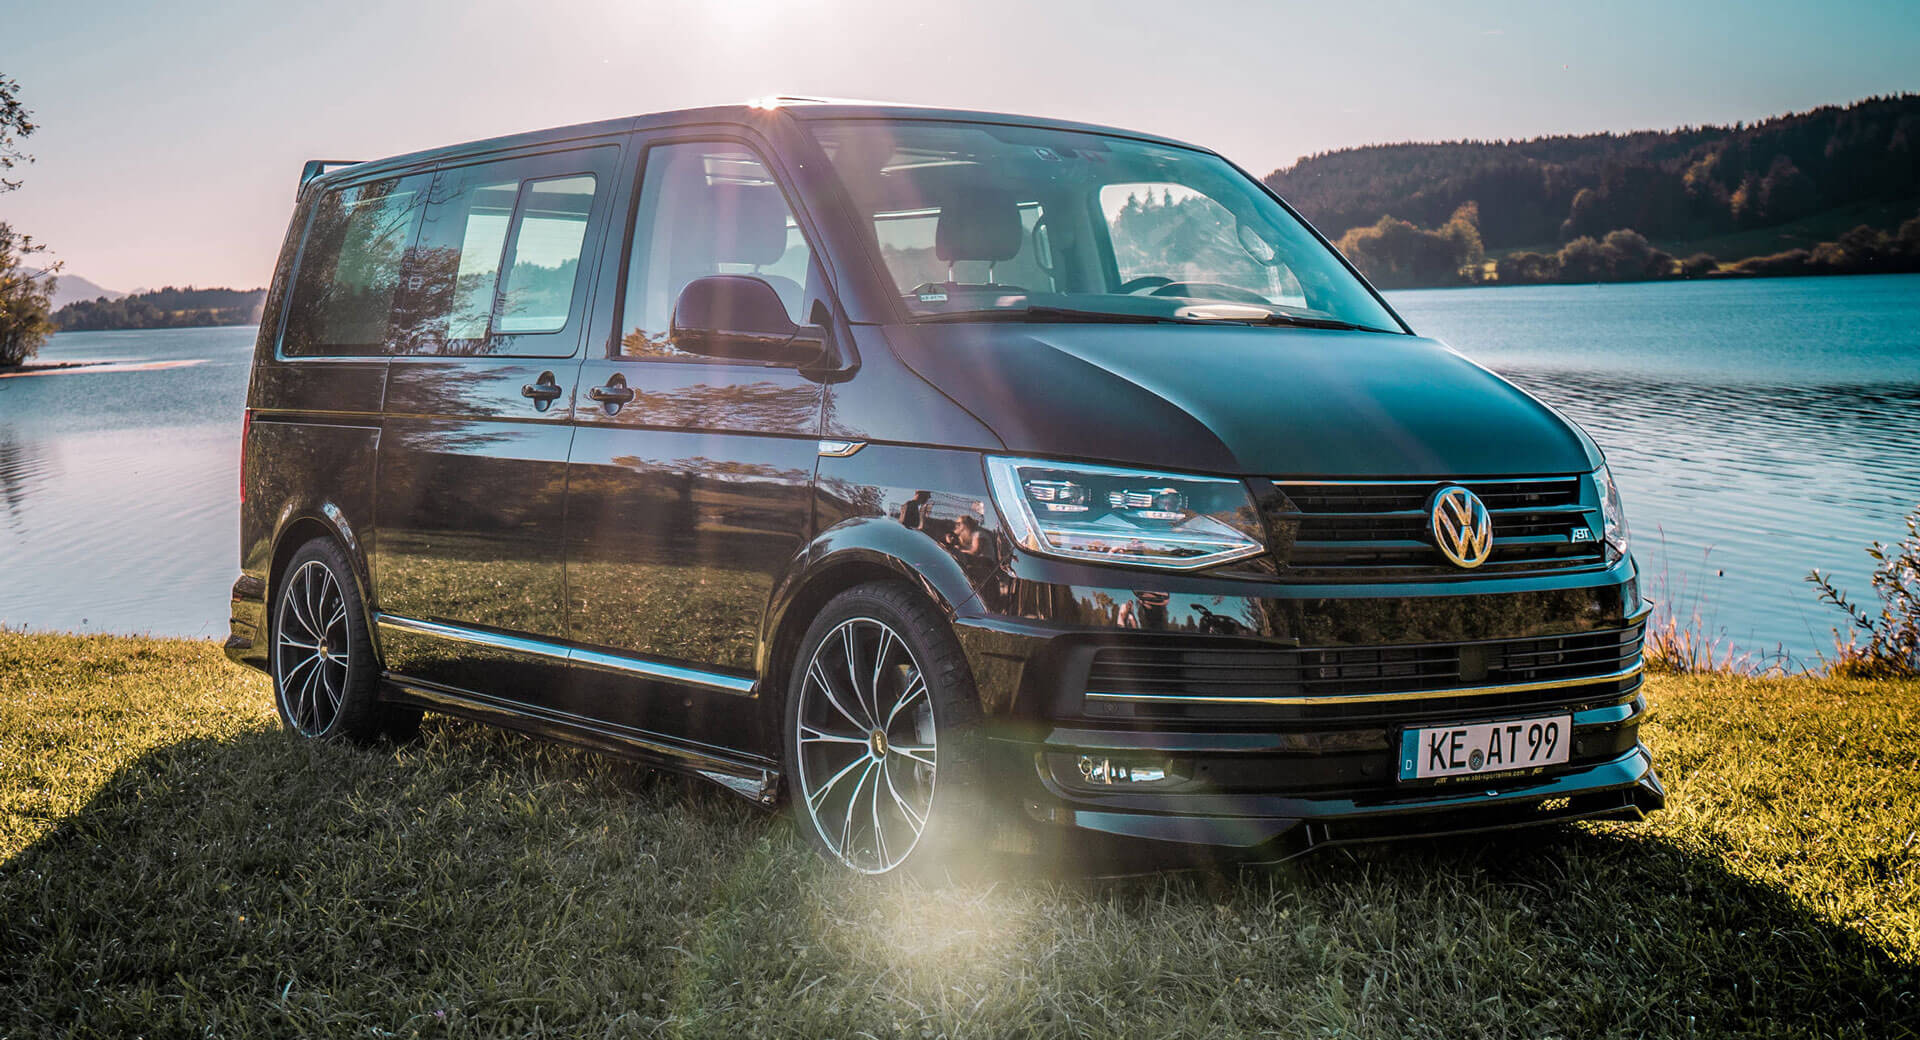 Abt Gives Vw T6 A Dose Of Aggressiveness Injects More Power Carscoops